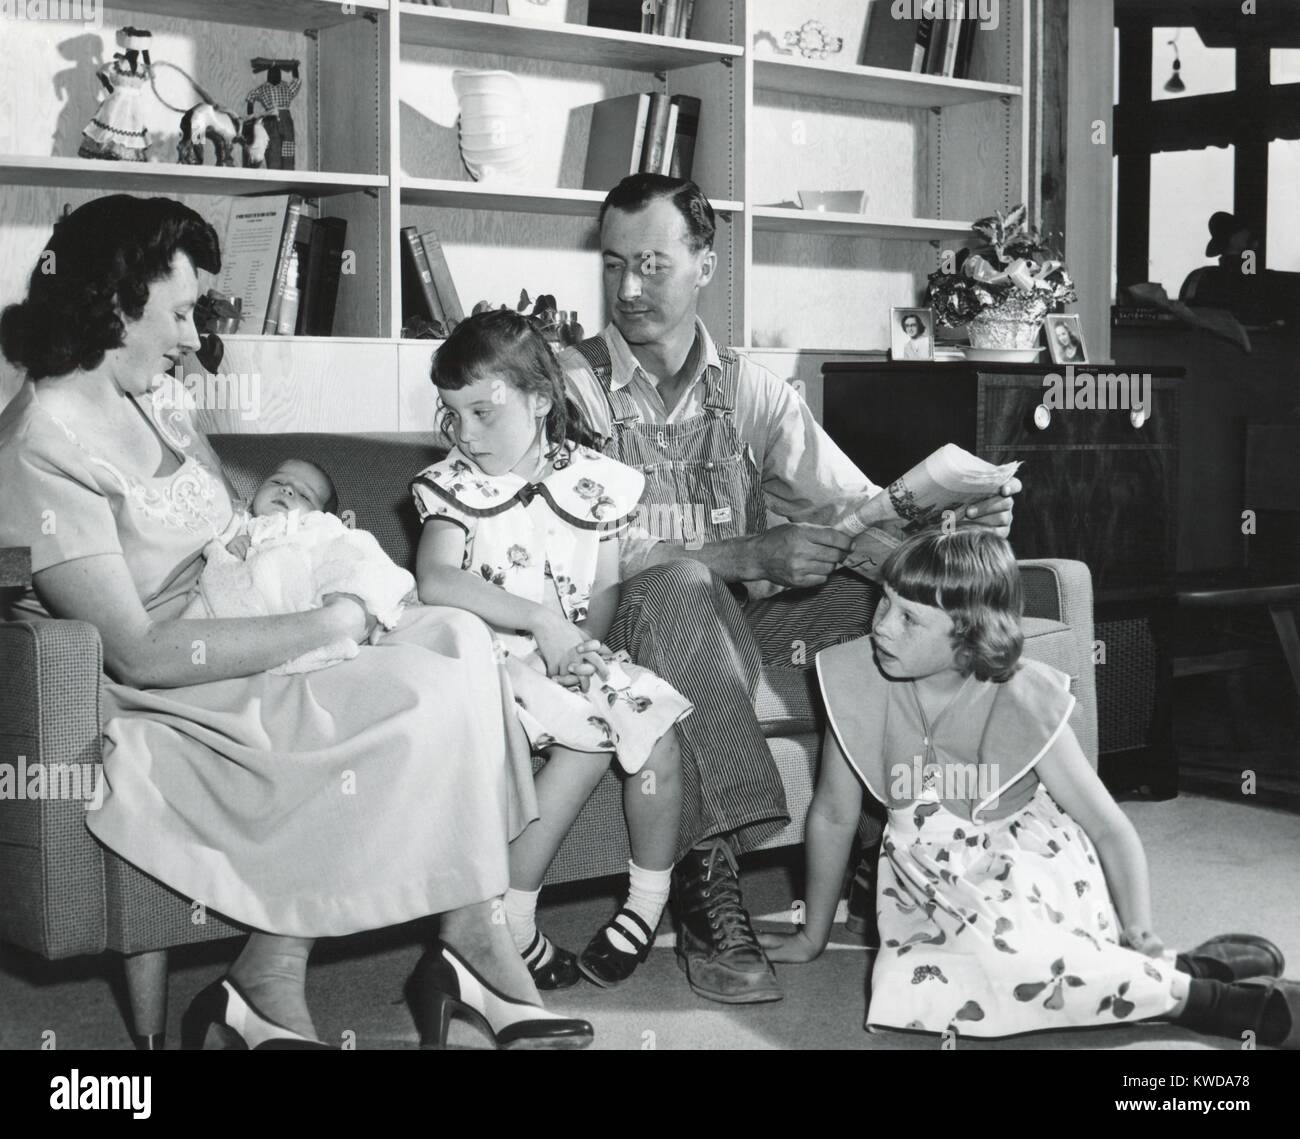 family life 1950s stock photos family life 1950s stock images alamy. Black Bedroom Furniture Sets. Home Design Ideas